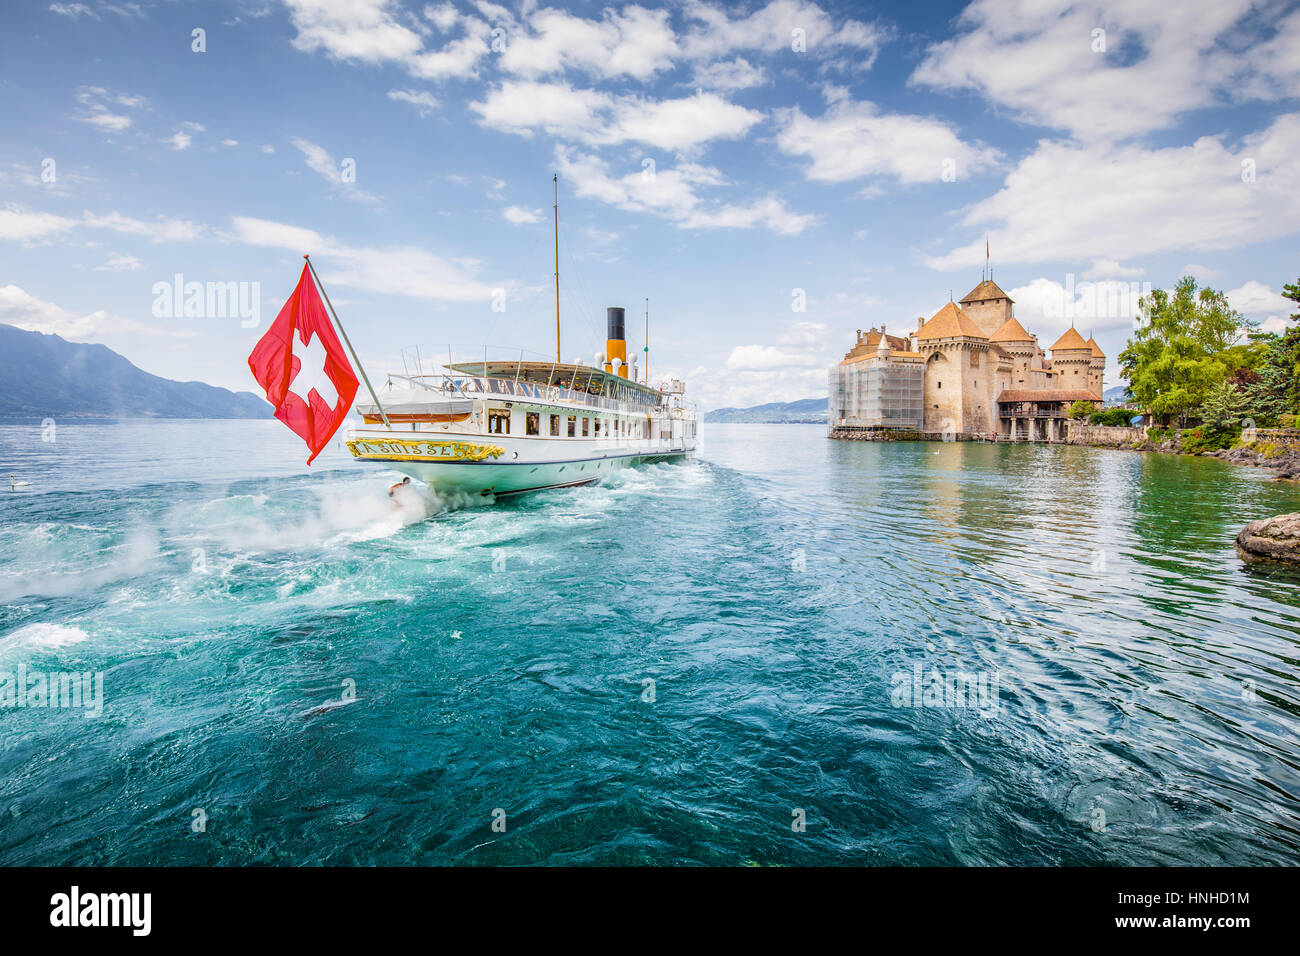 Traditional paddle steamer excursion ship with historic Chateau de Chillon at famous Lake Geneva on a sunny day - Stock Image